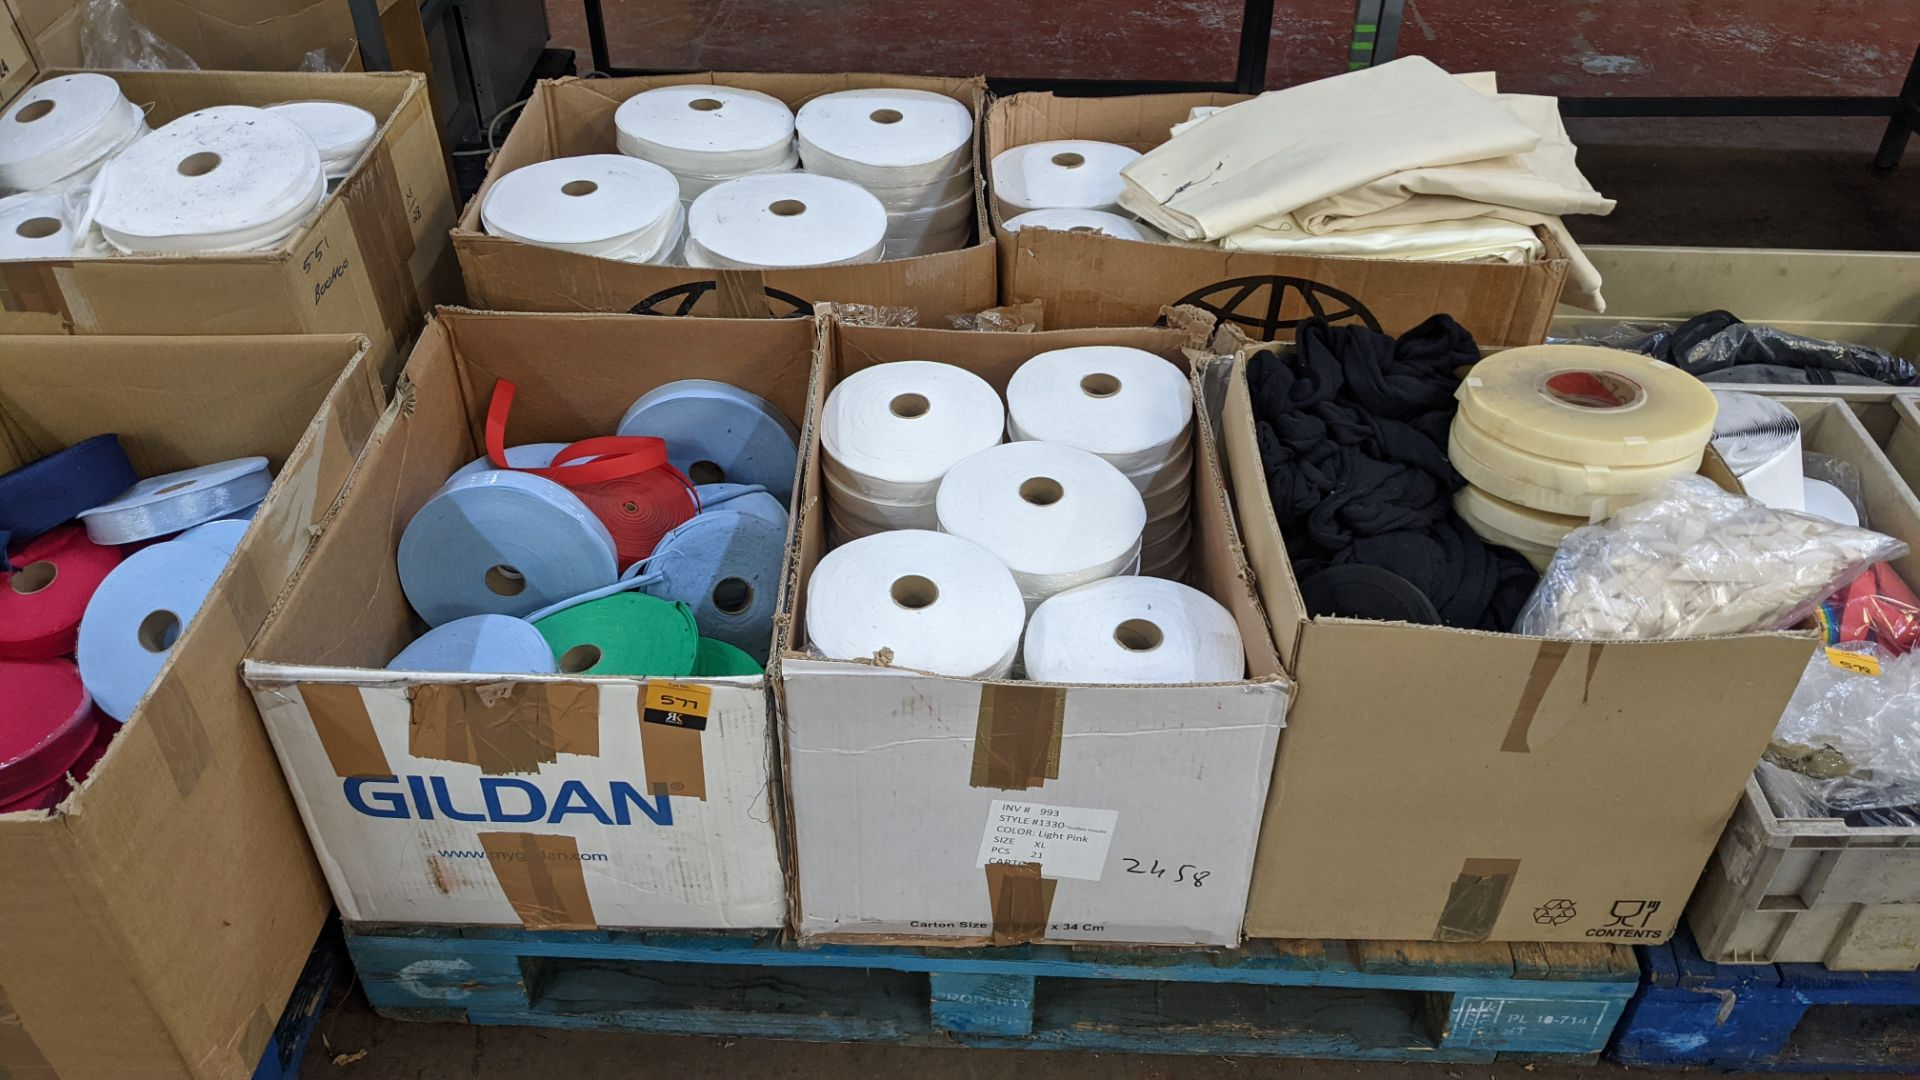 5 boxes of assorted tape & other materials